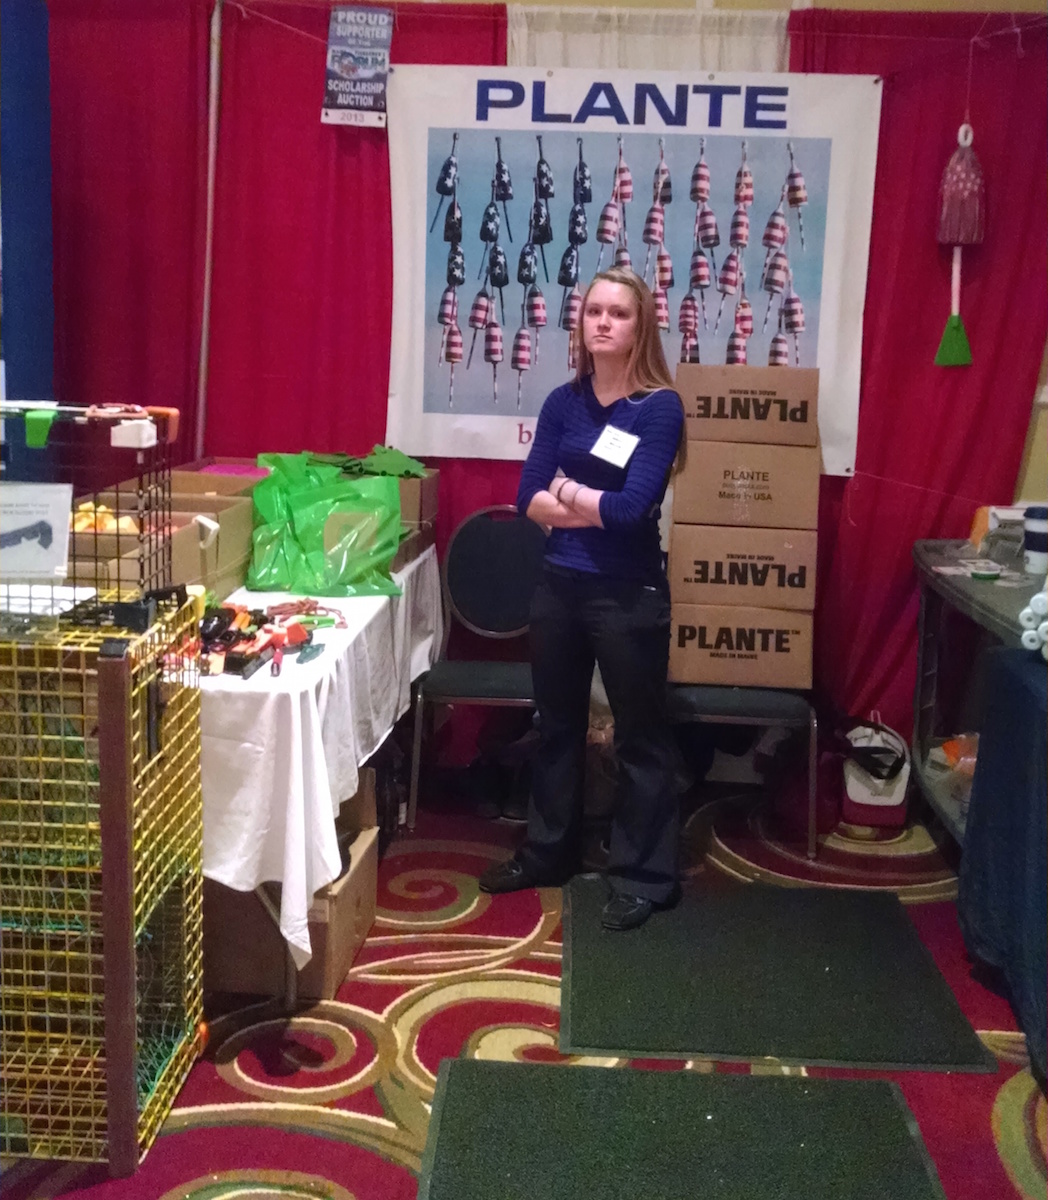 Sarah at the Plante Buoy Sticks Booth